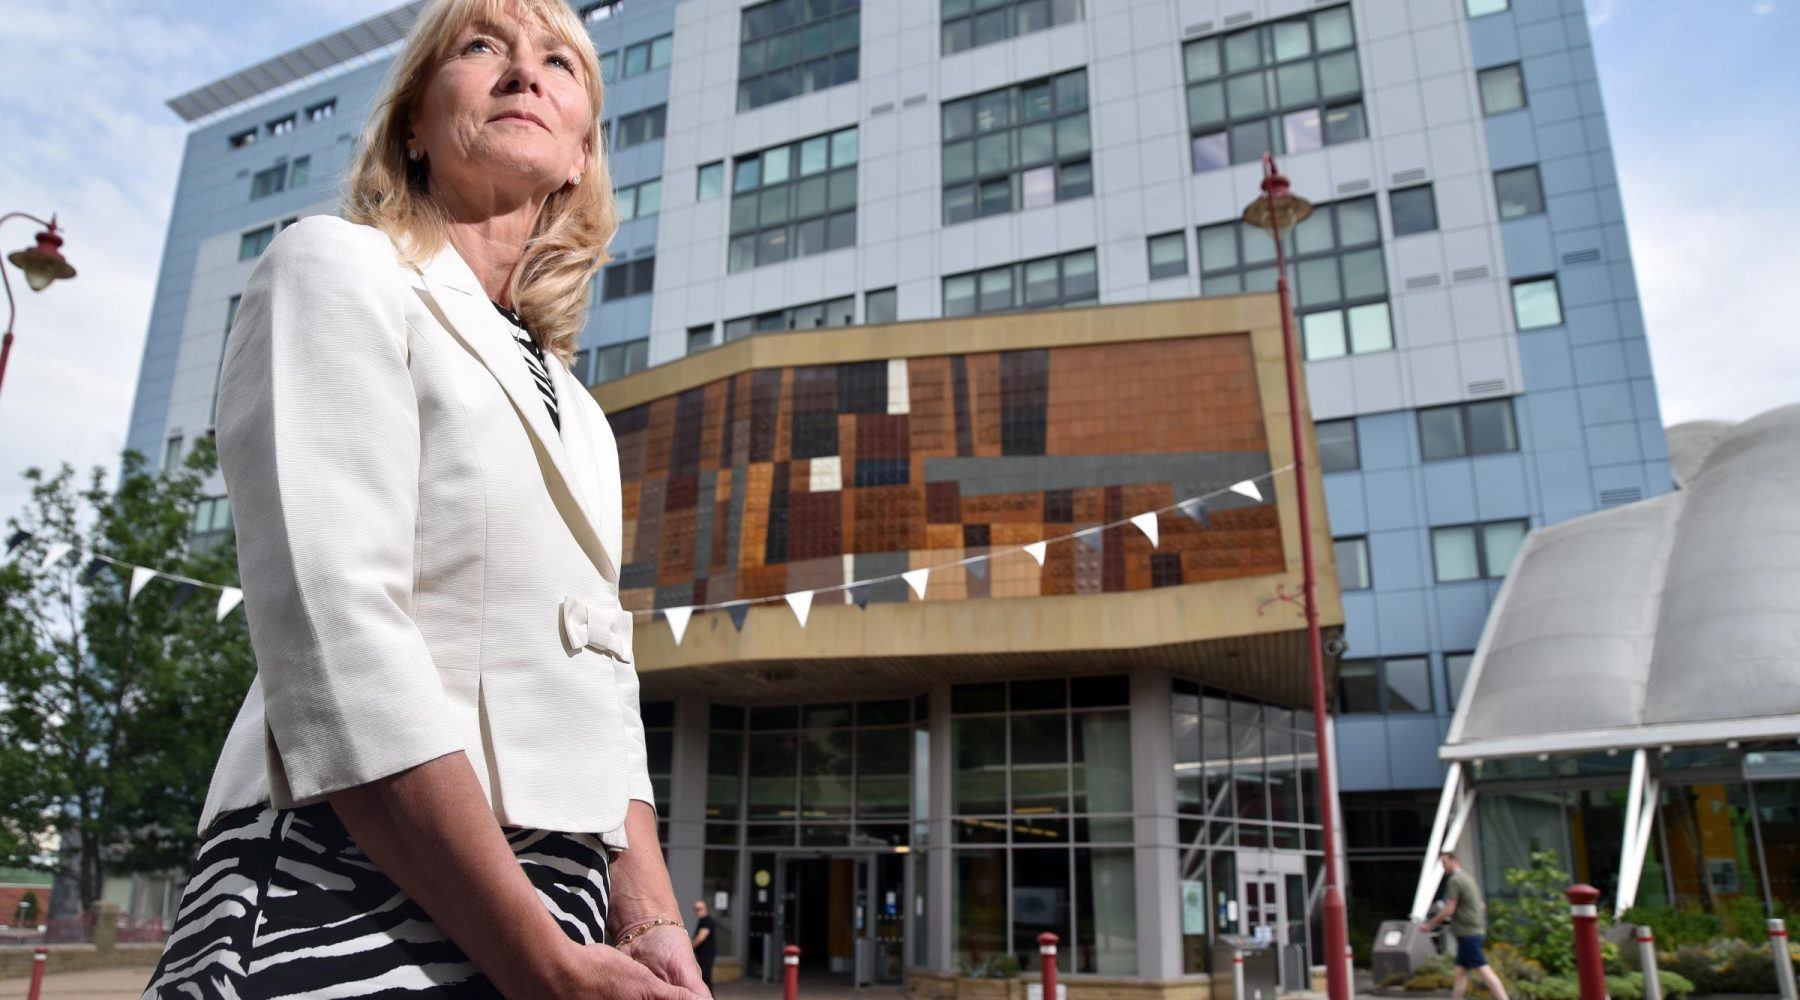 University of Bradford boosts economy by £120m